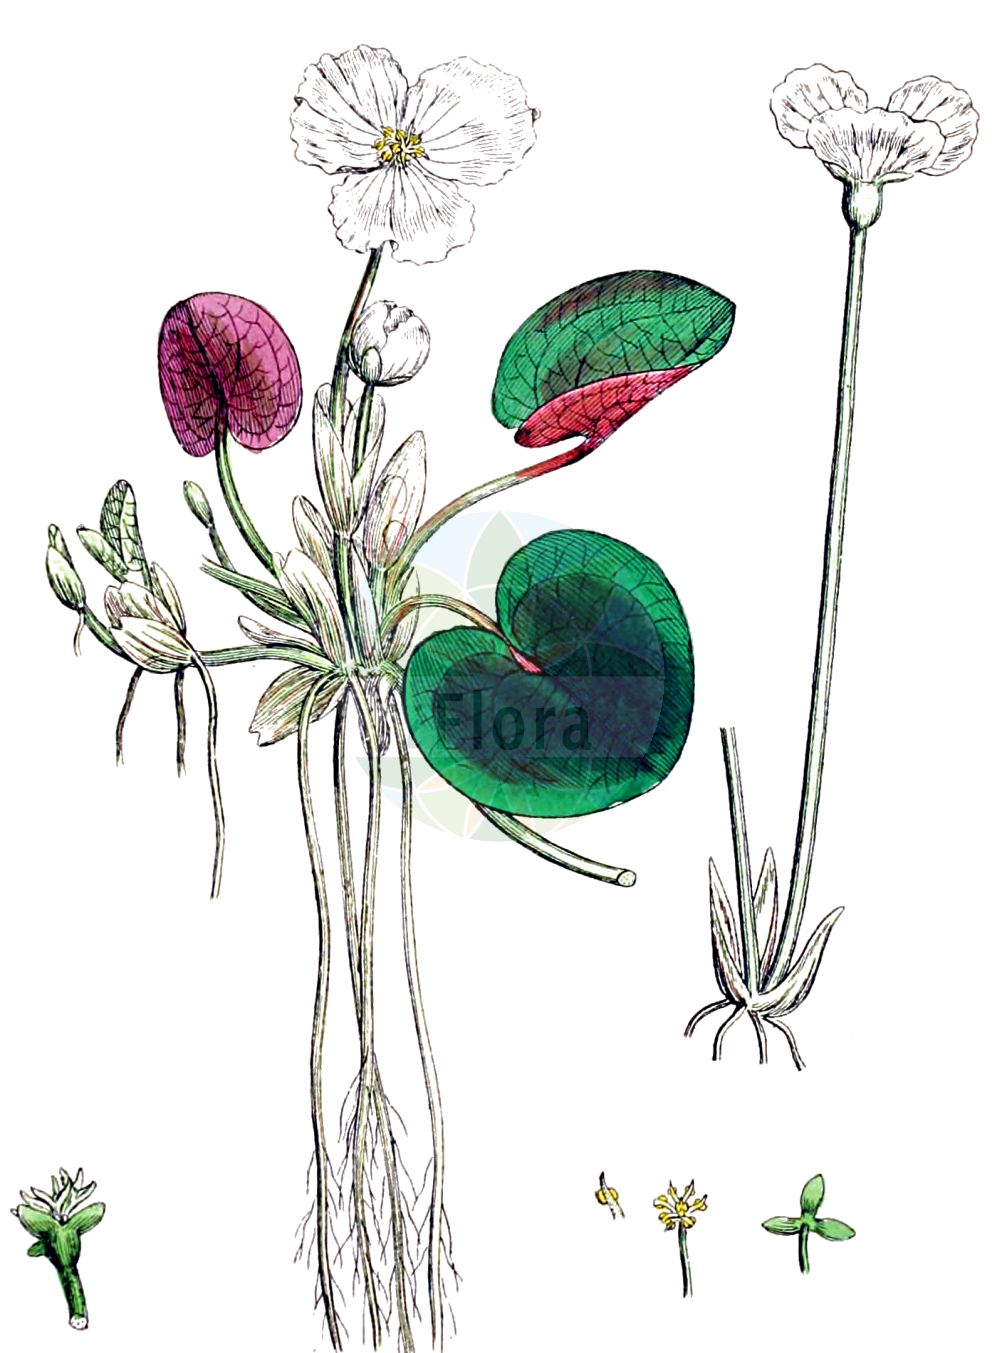 Historische Abbildung von Hydrocharis morsus-ranae (Europaeischer Froschbiss - Frogbit). Das Bild zeigt Blatt, Bluete, Frucht und Same. ---- Historical Drawing of Hydrocharis morsus-ranae (Europaeischer Froschbiss - Frogbit).The image is showing leaf, flower, fruit and seed.(Hydrocharis morsus-ranae,Europaeischer Froschbiss,Frogbit,Hydrocharis morsus-ranae,Europaeischer Froschbiss,Froschbiss,Frogbit,European Frogbit,Common Frogbit,Hydrocharis,Froschbiss,Frogbit,Hydrocharitaceae,Froschbissgewaechse,Frogbit family,Blatt,Bluete,Frucht,Same,leaf,flower,fruit,seed,Sowerby (1790-1813))